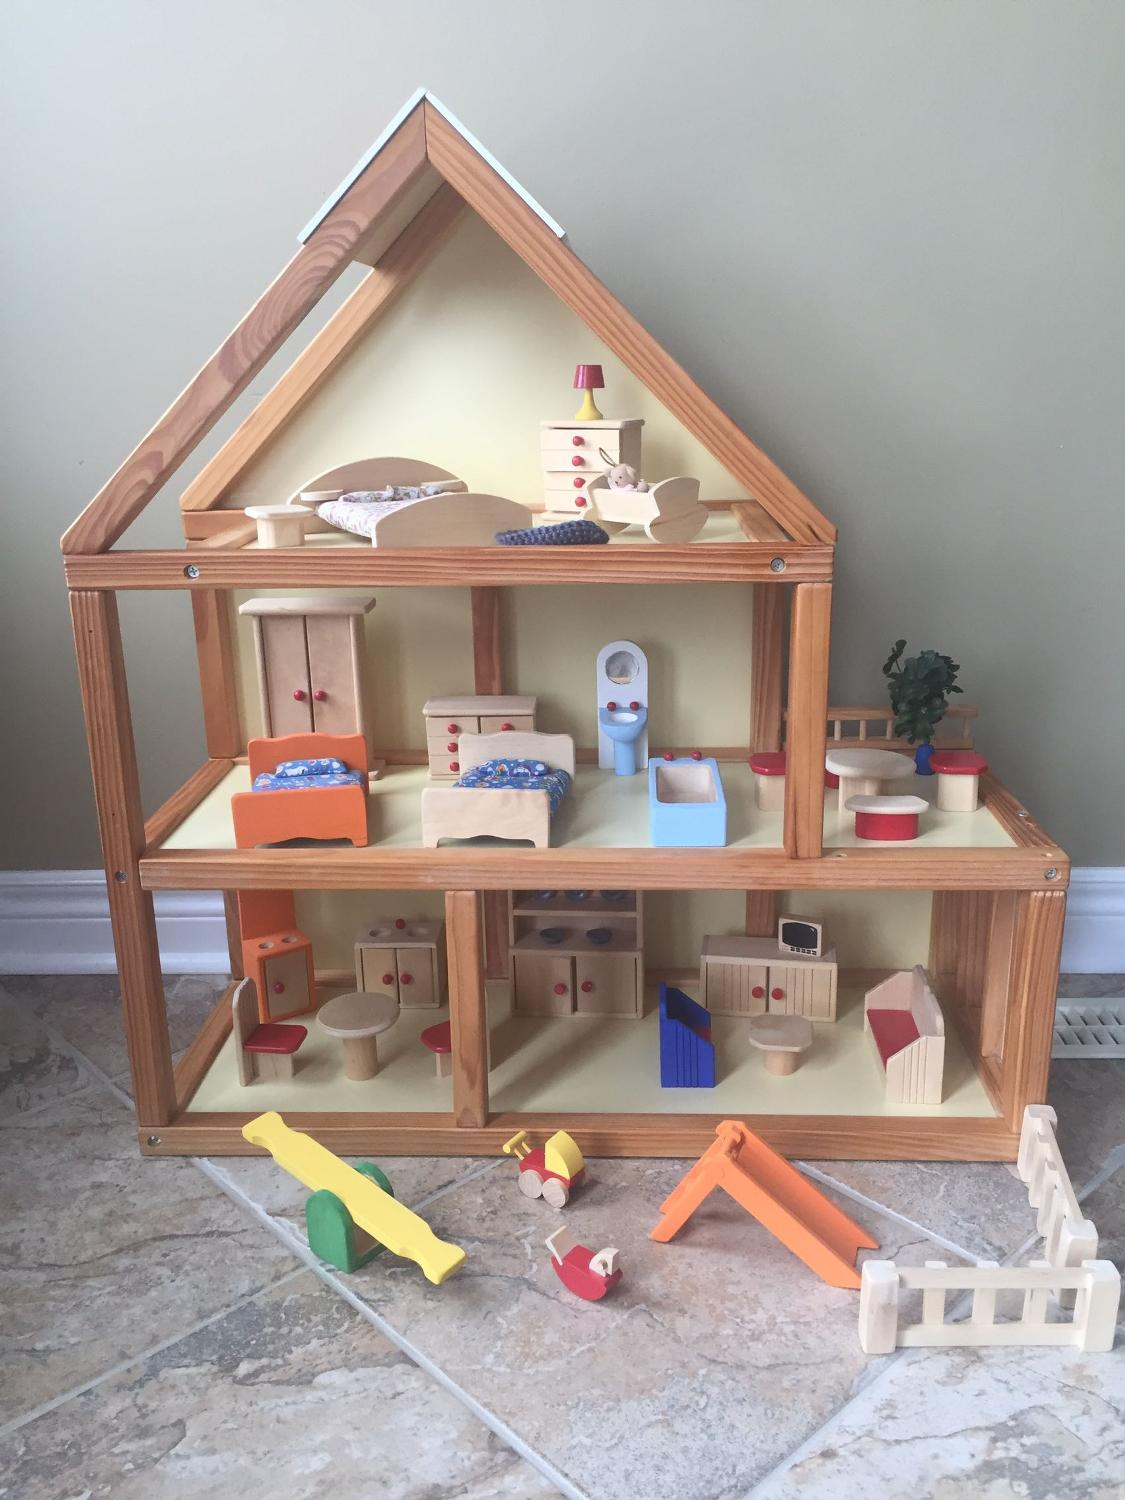 Very Impressive portraiture of Best Wooden Dollhouse With Furniture for sale in Halton Hills Ontario  with #8B7140 color and 1125x1500 pixels